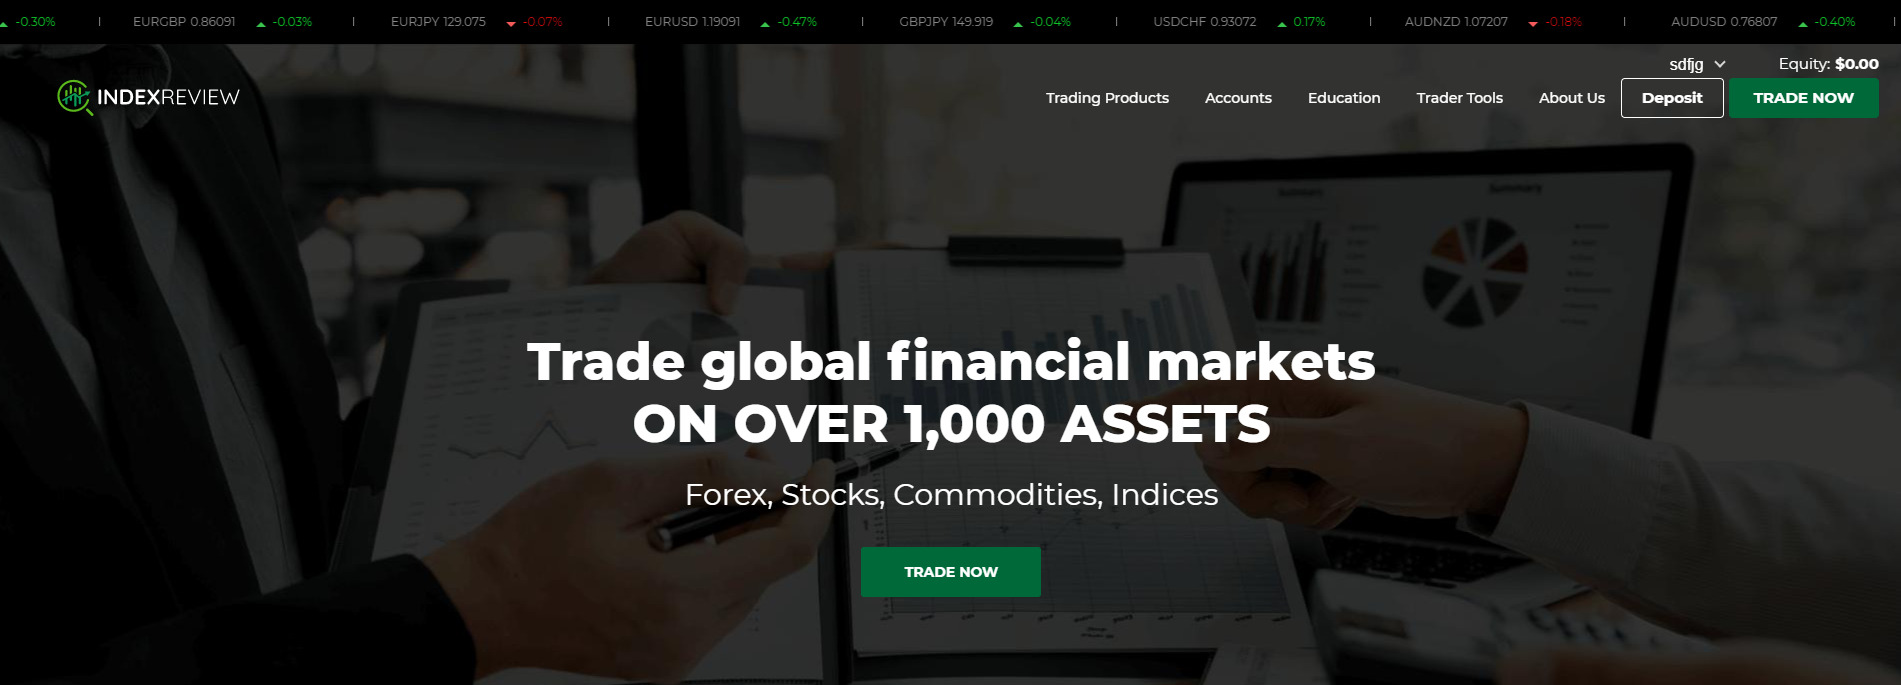 IndexReview tradable assets